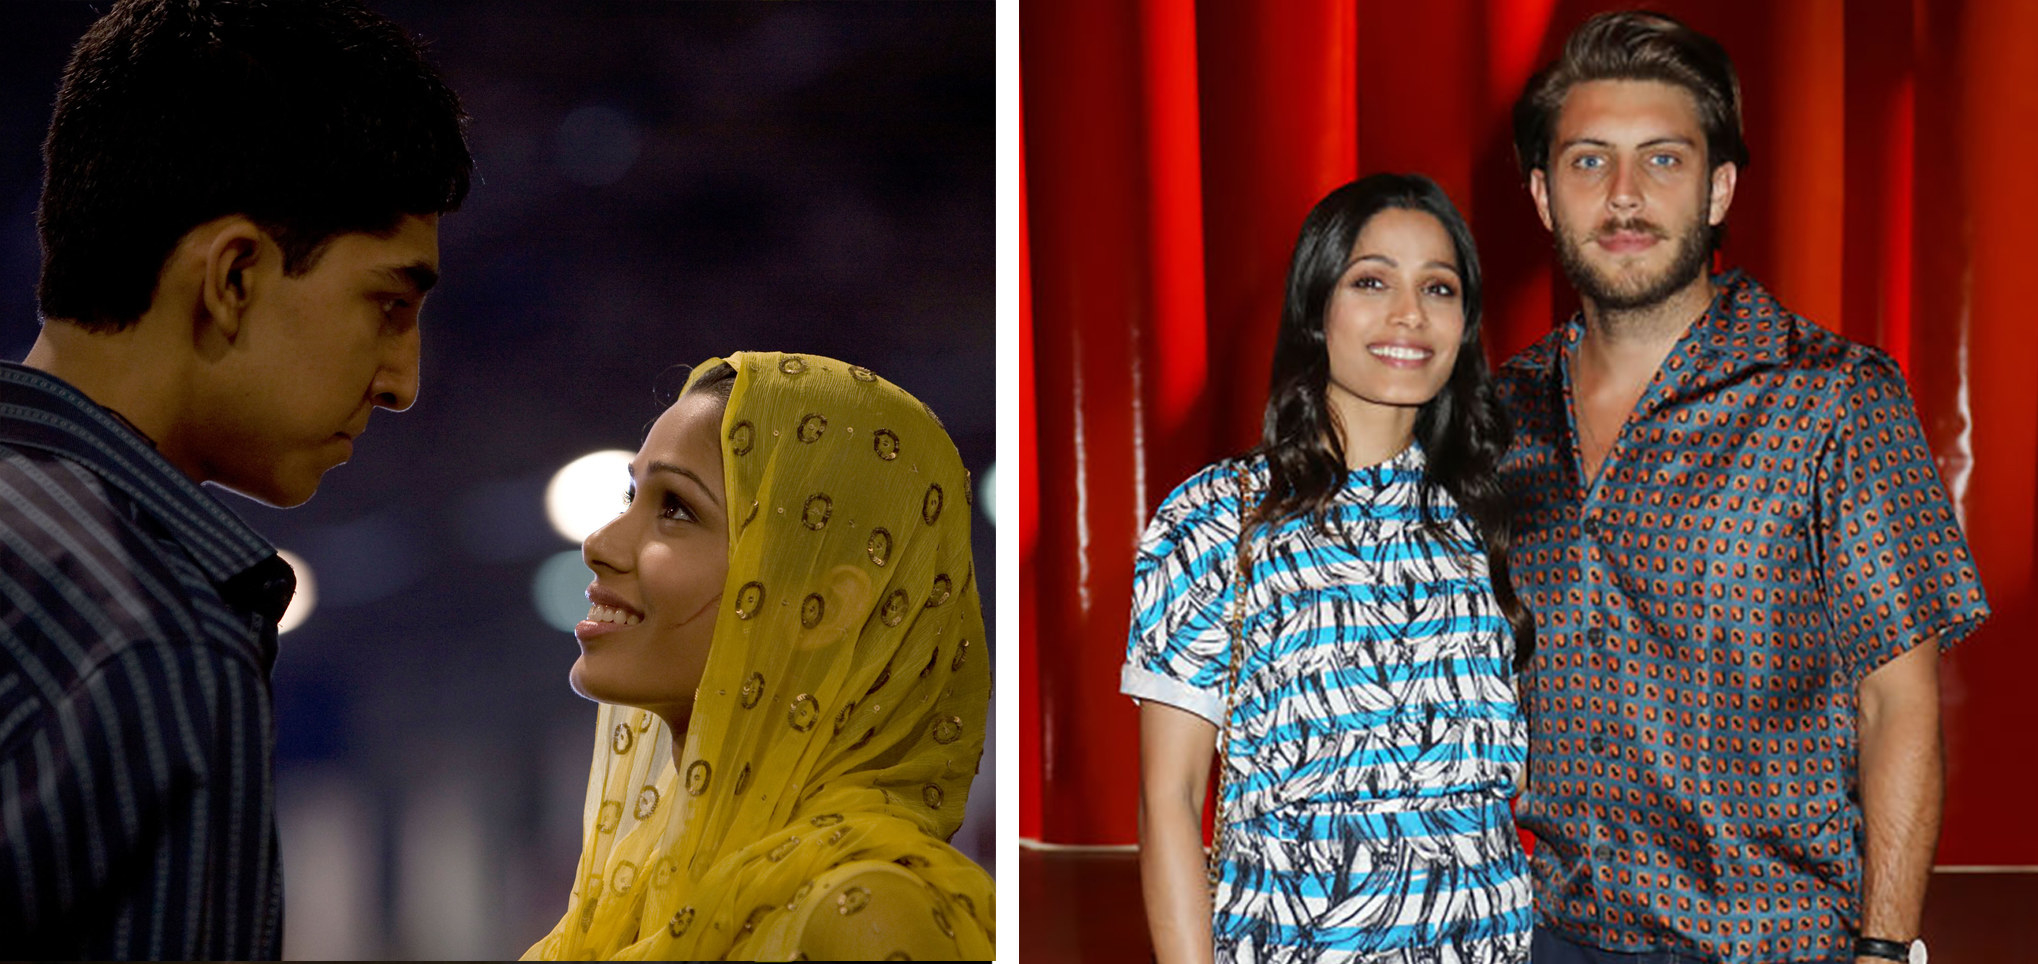 Freida looking at her co-star Dev Patel on the left. On the right, she is standing with her fiancé.